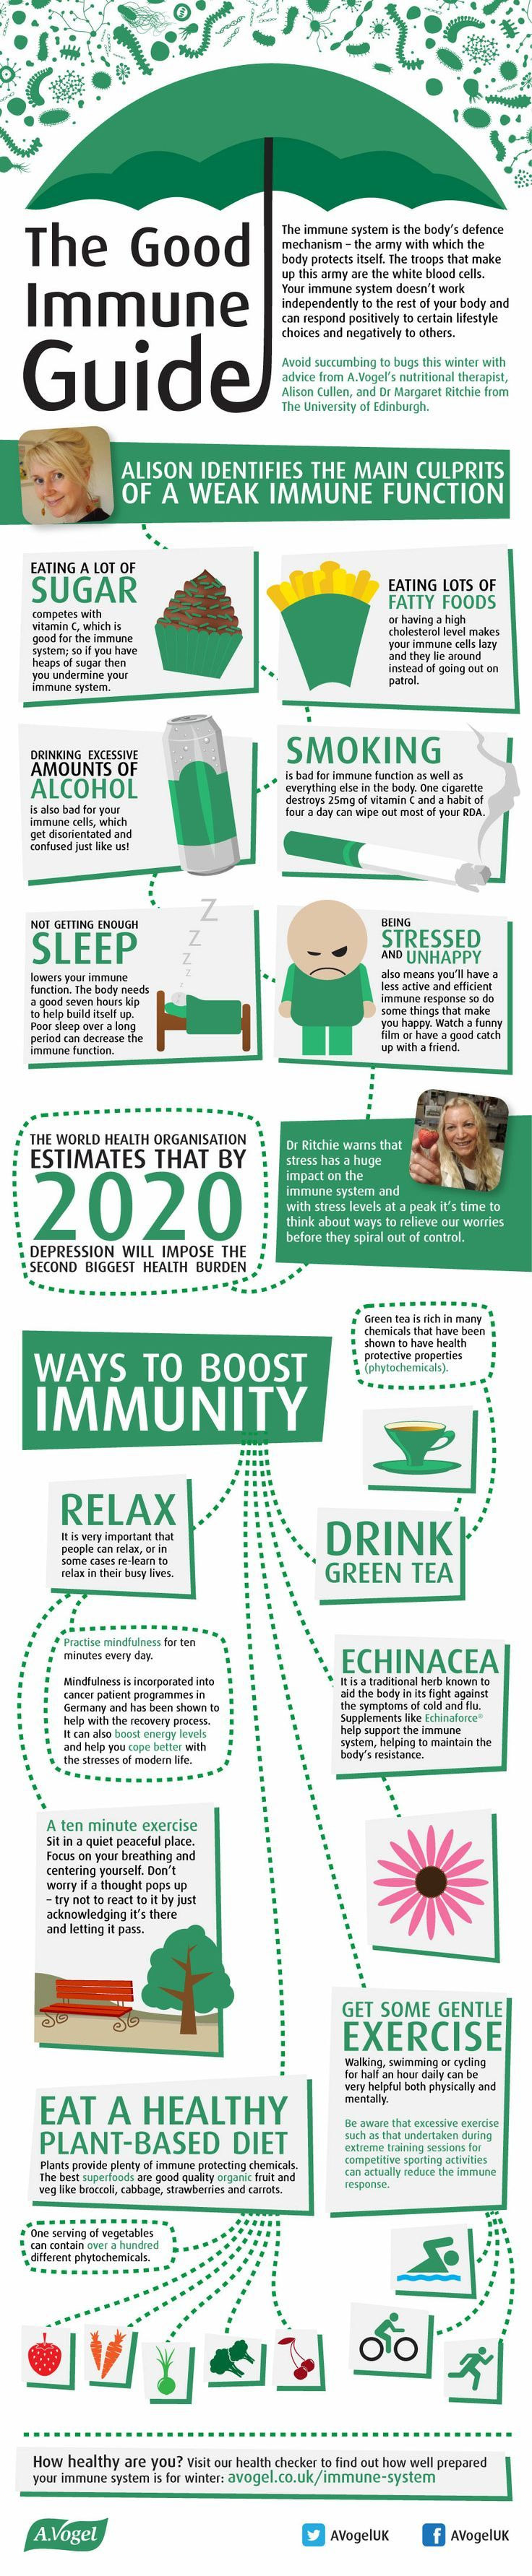 The Good Immune Guide | Favorite Pins                                                                                                                                                      More